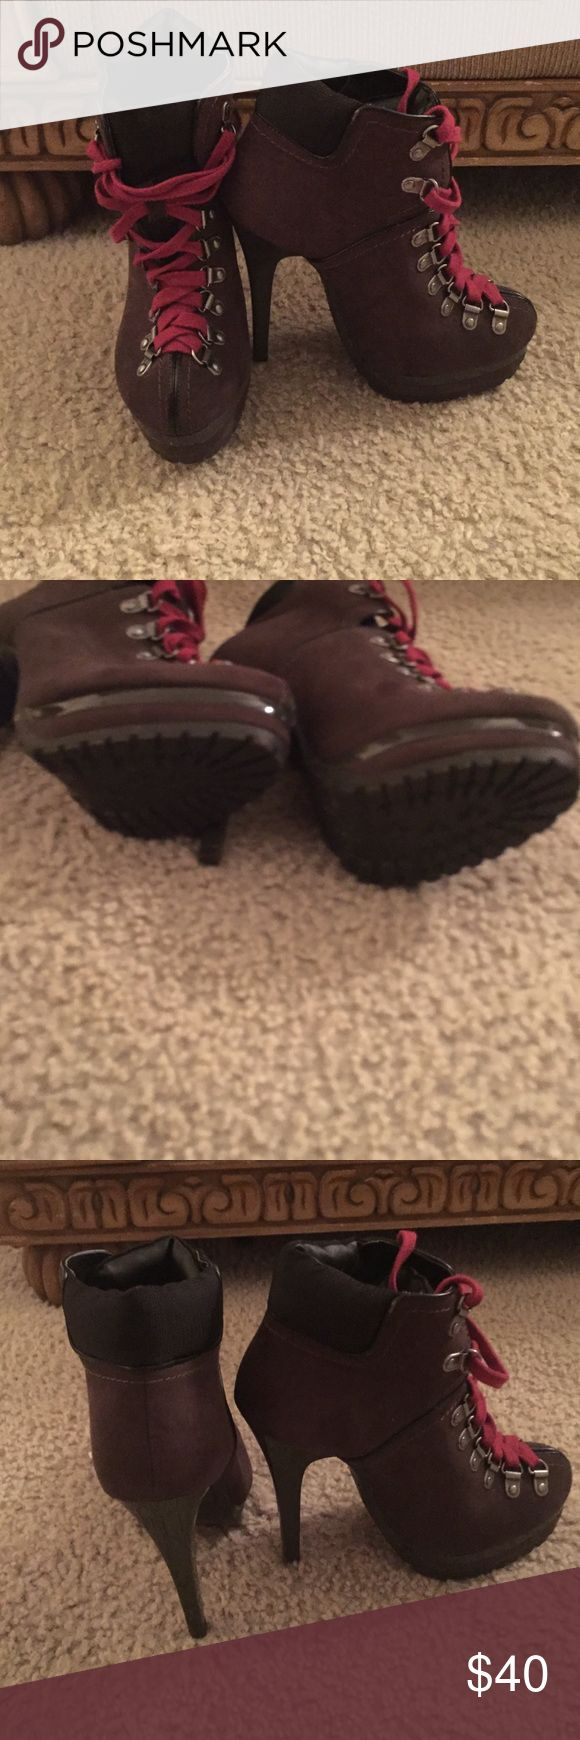 Brown heeled  boots with red laces In good condition. Has only been worn once Shoes Heeled Boots